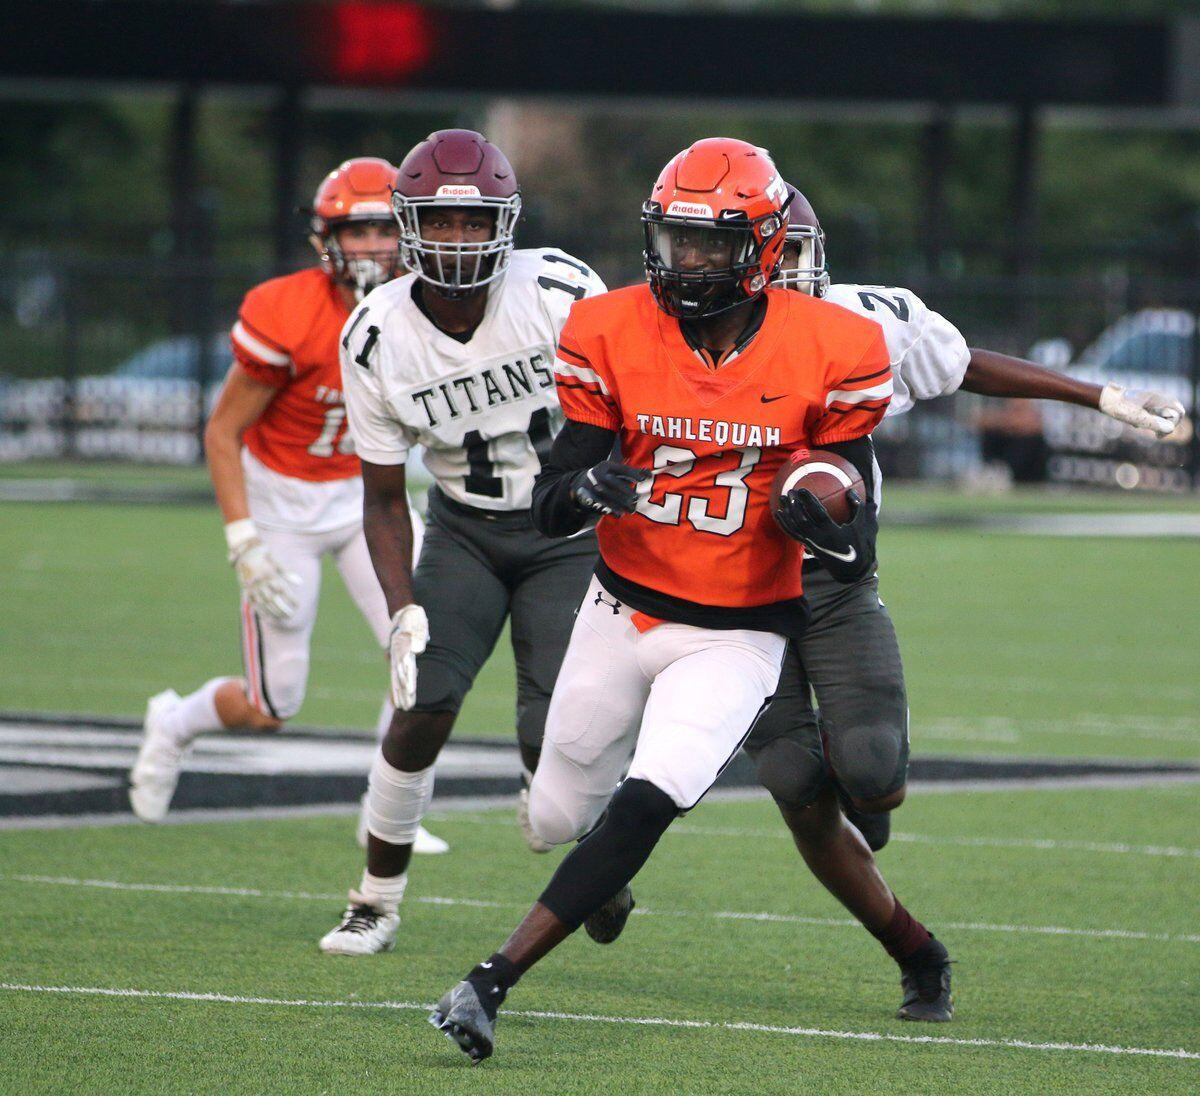 GOOD ENOUGH: Tigers sloppy in season-opening win over McLain